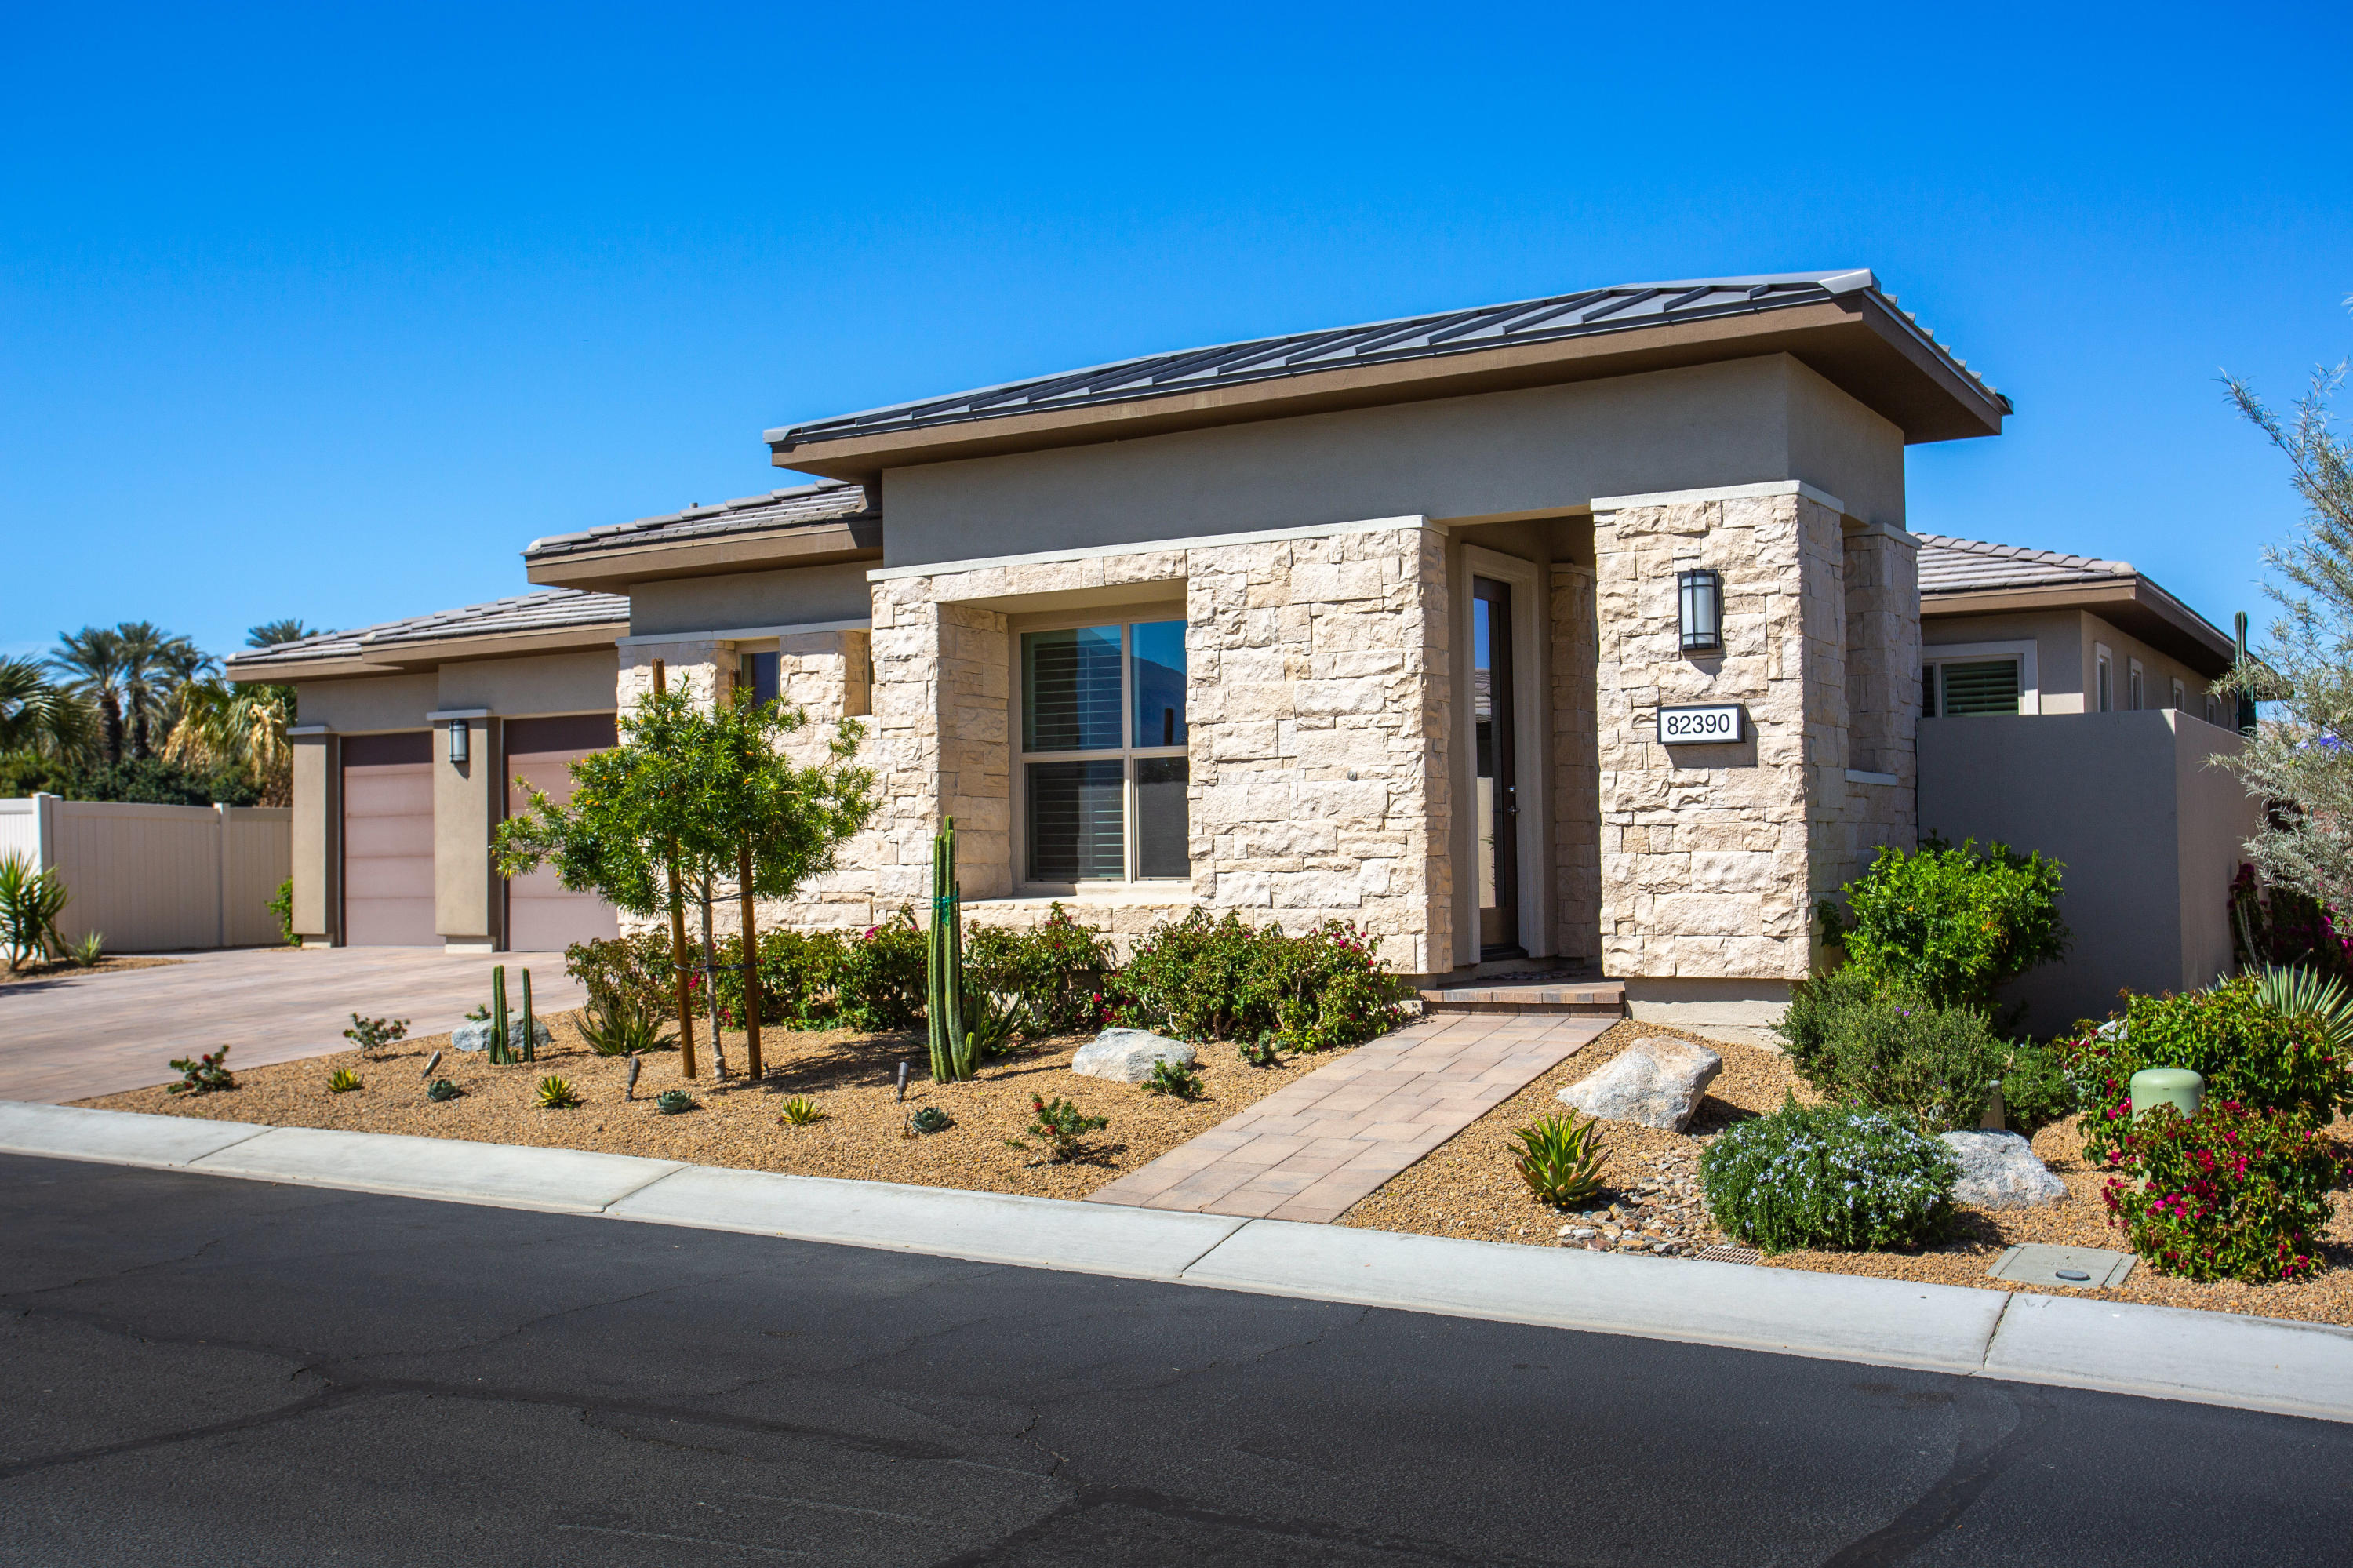 Photo of 82390 Coral Mountain Drive, Indio, CA 92201